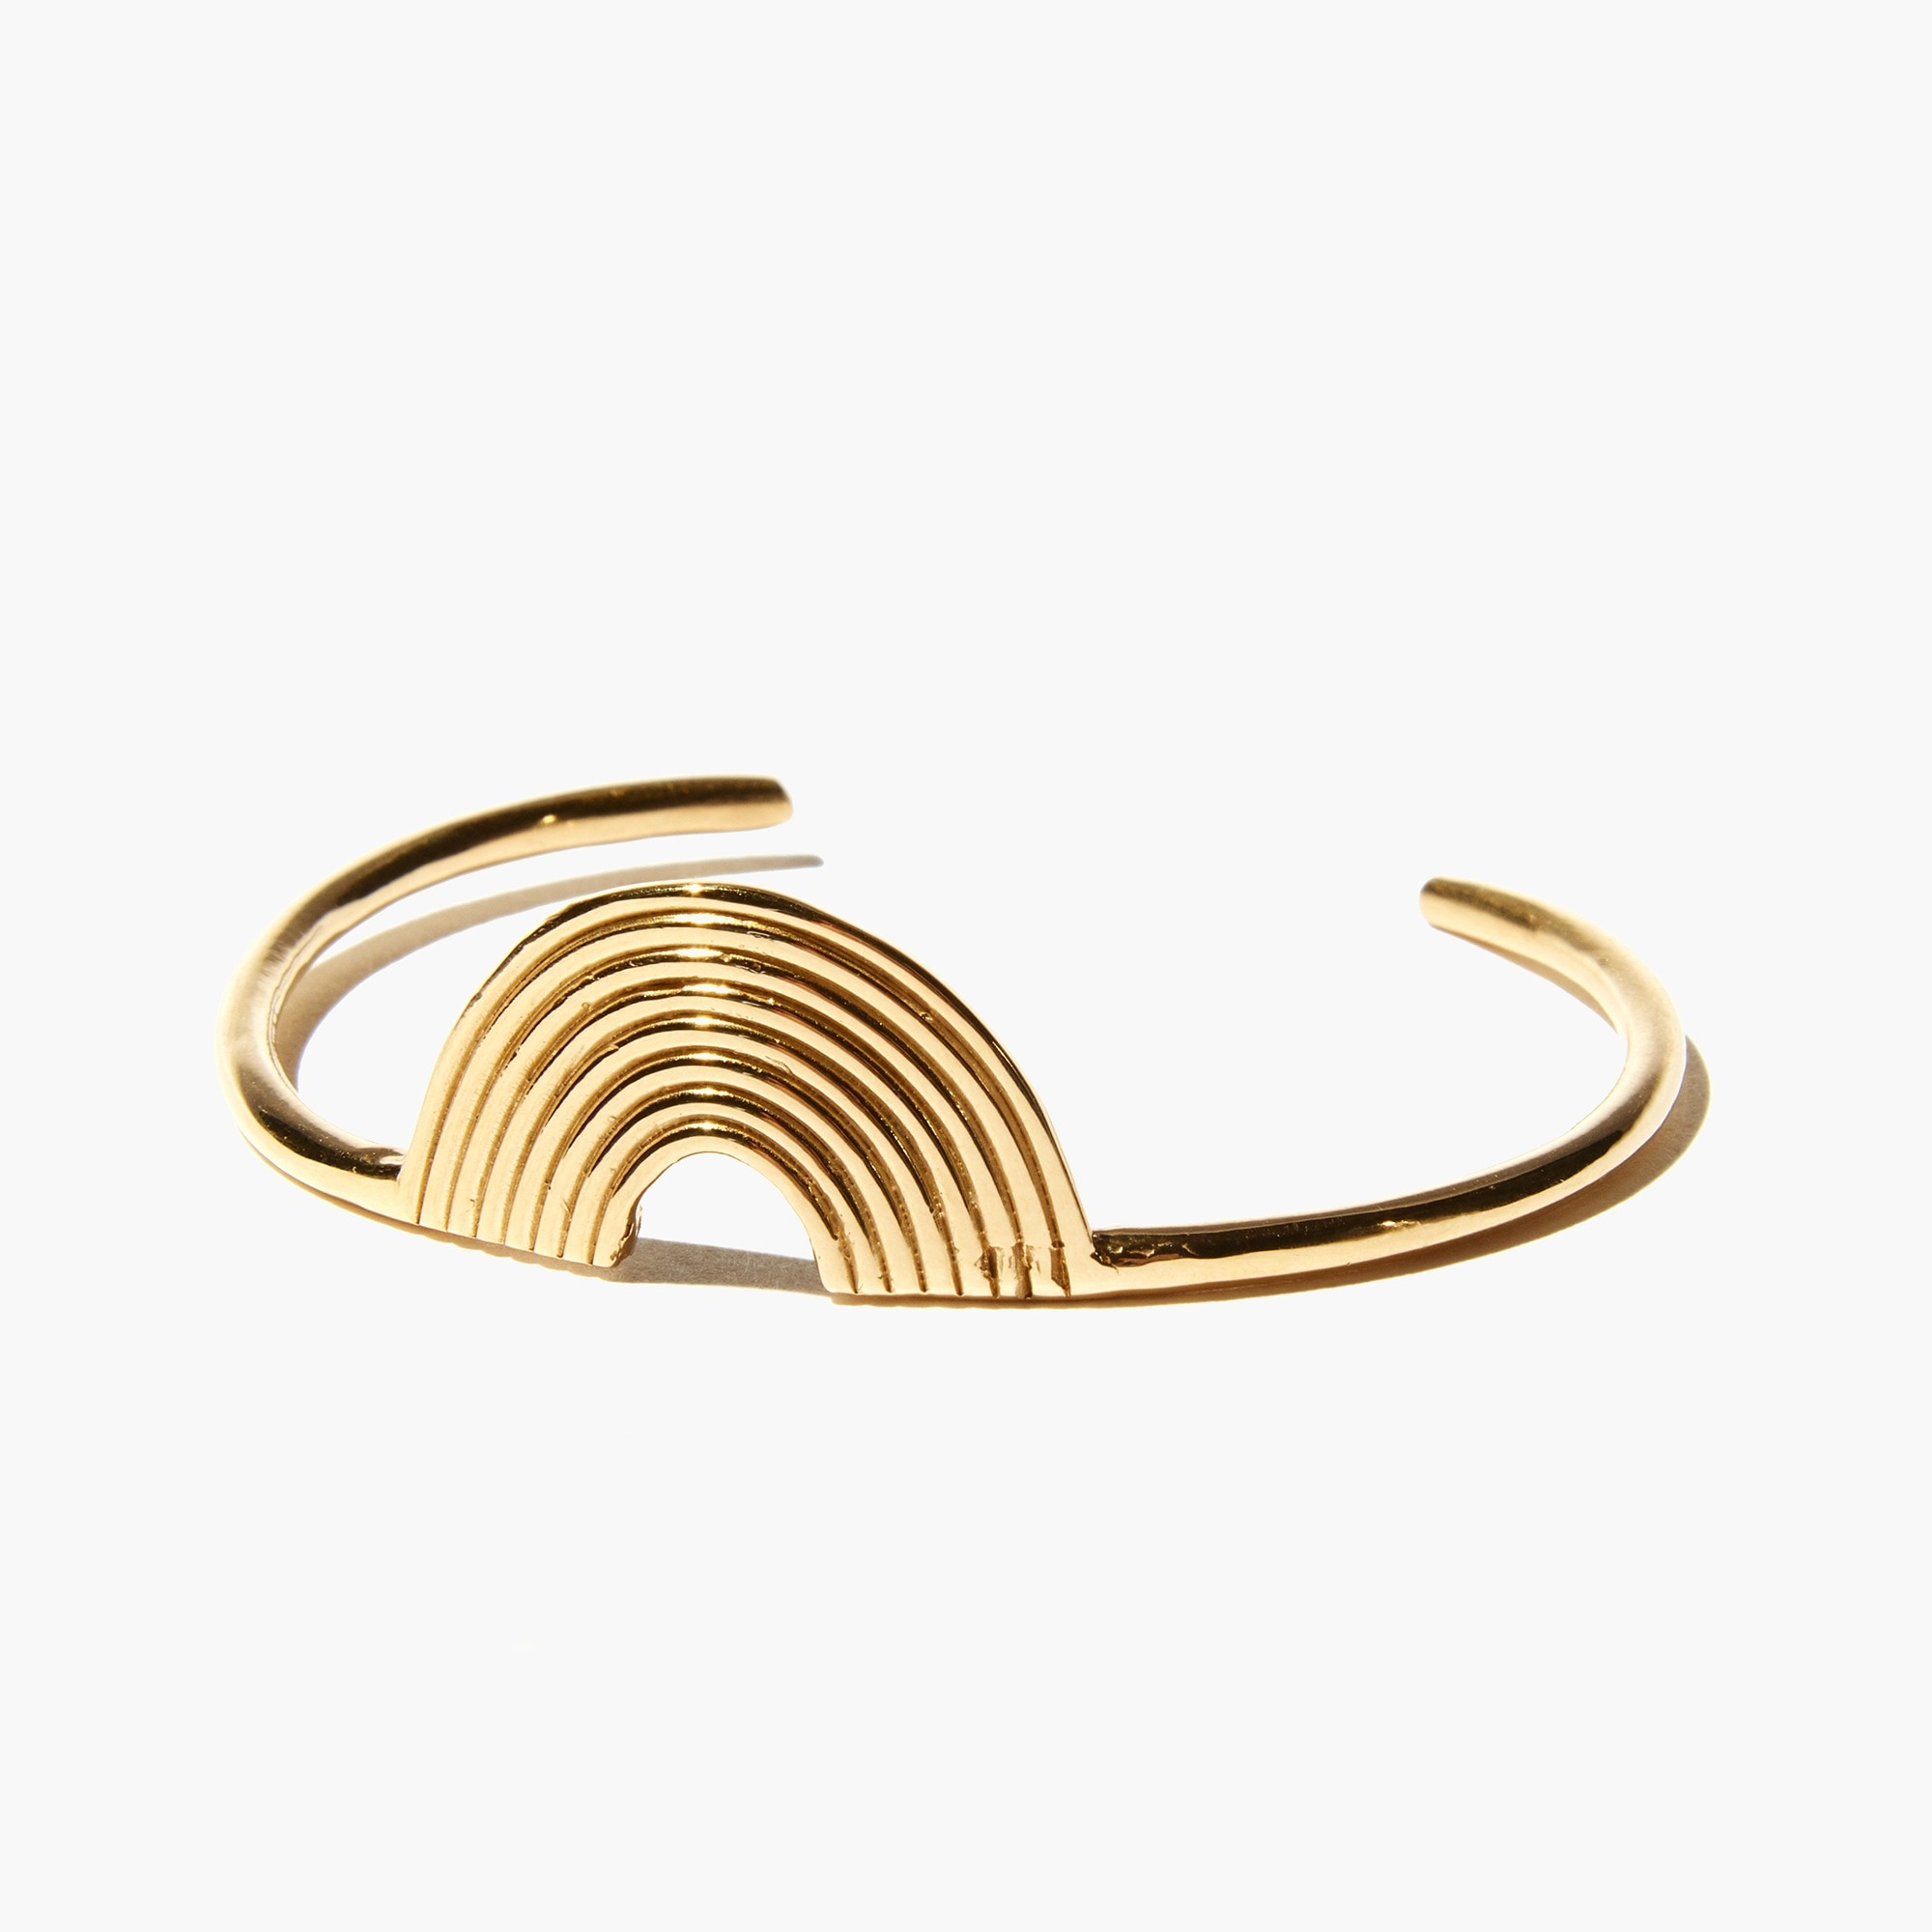 Odette New York® Aalto cuff women j.crew in good company c